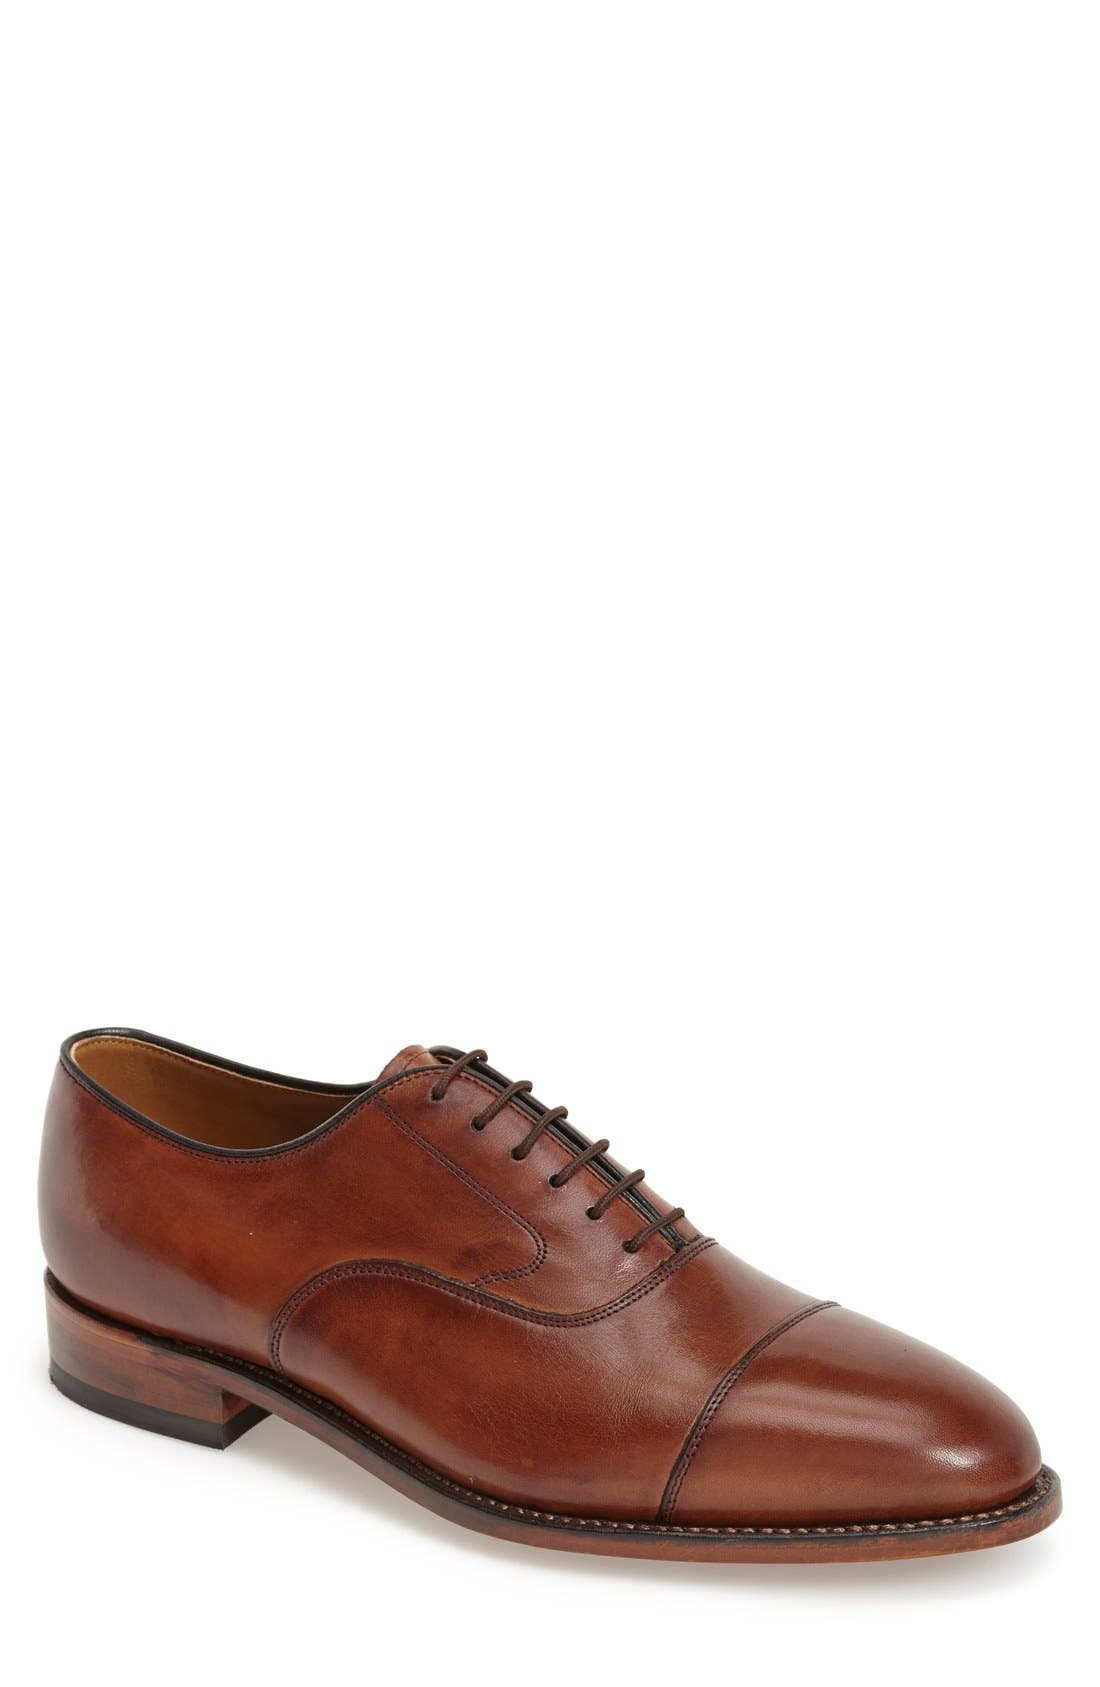 Main Image - Johnston & Murphy 'Melton' Oxford (Men)